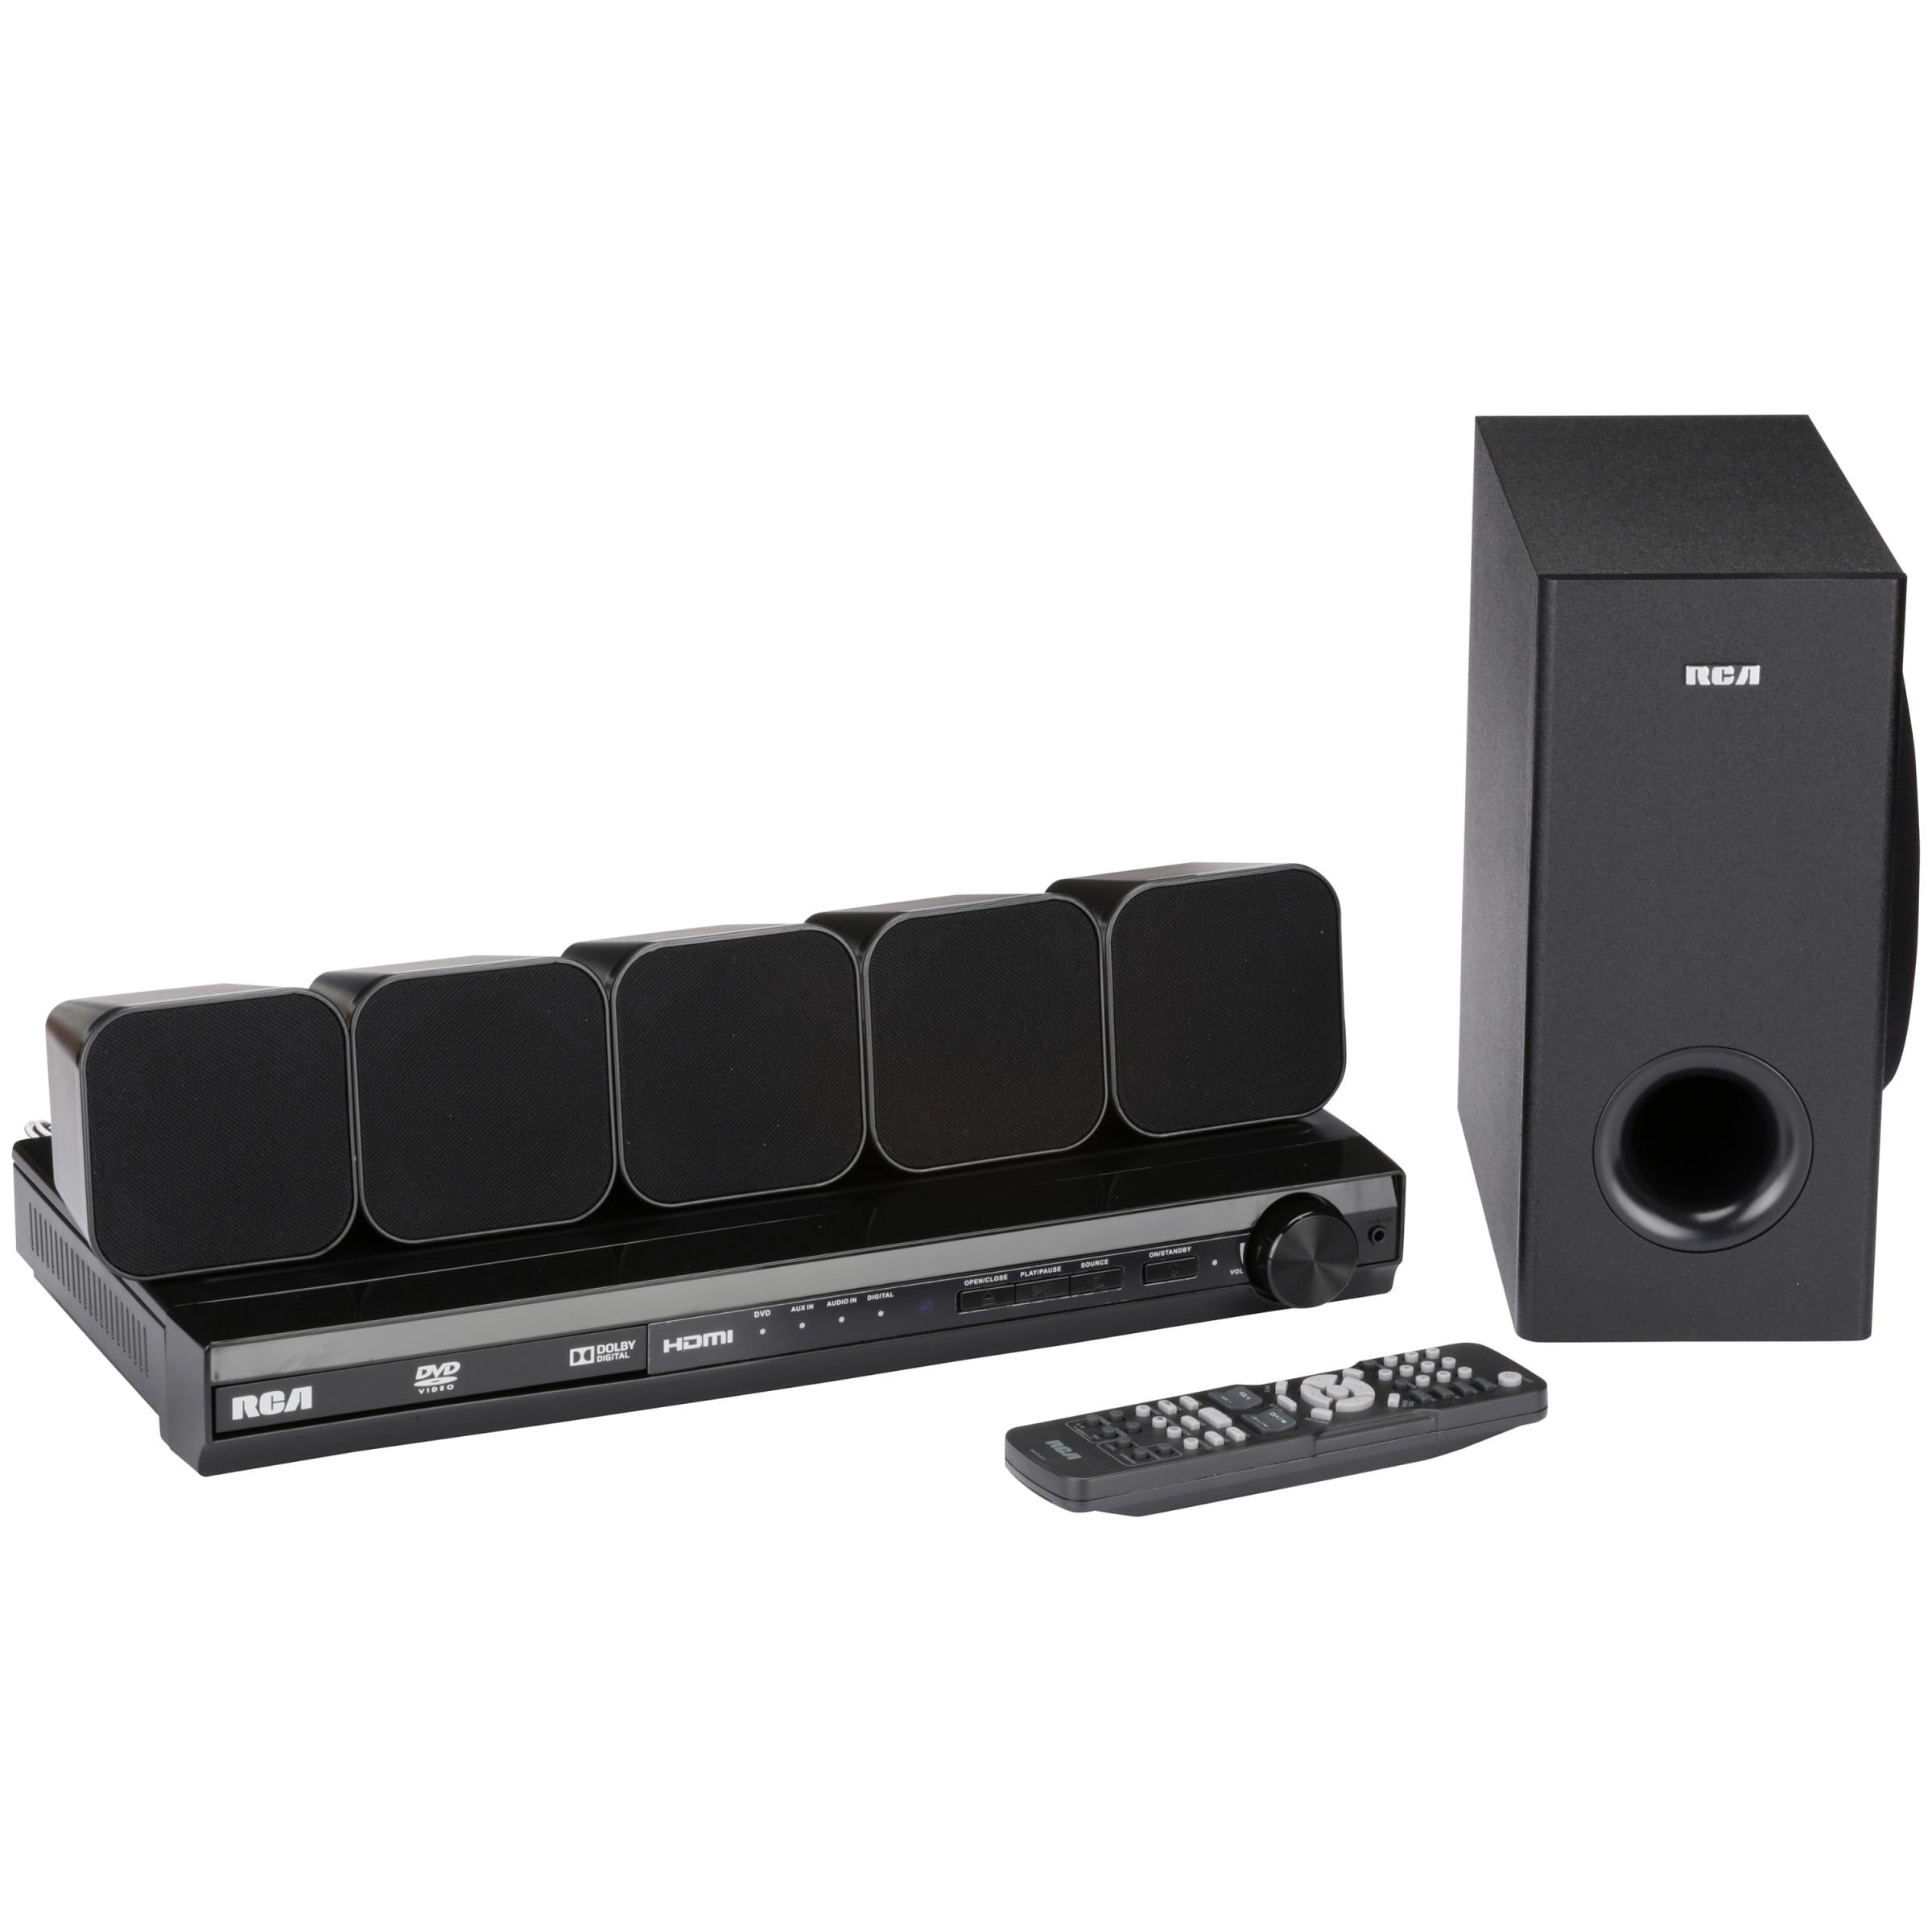 RCA DVD Home Theater System with HDMI 1080p Output 8 pc Box - Walmart.com